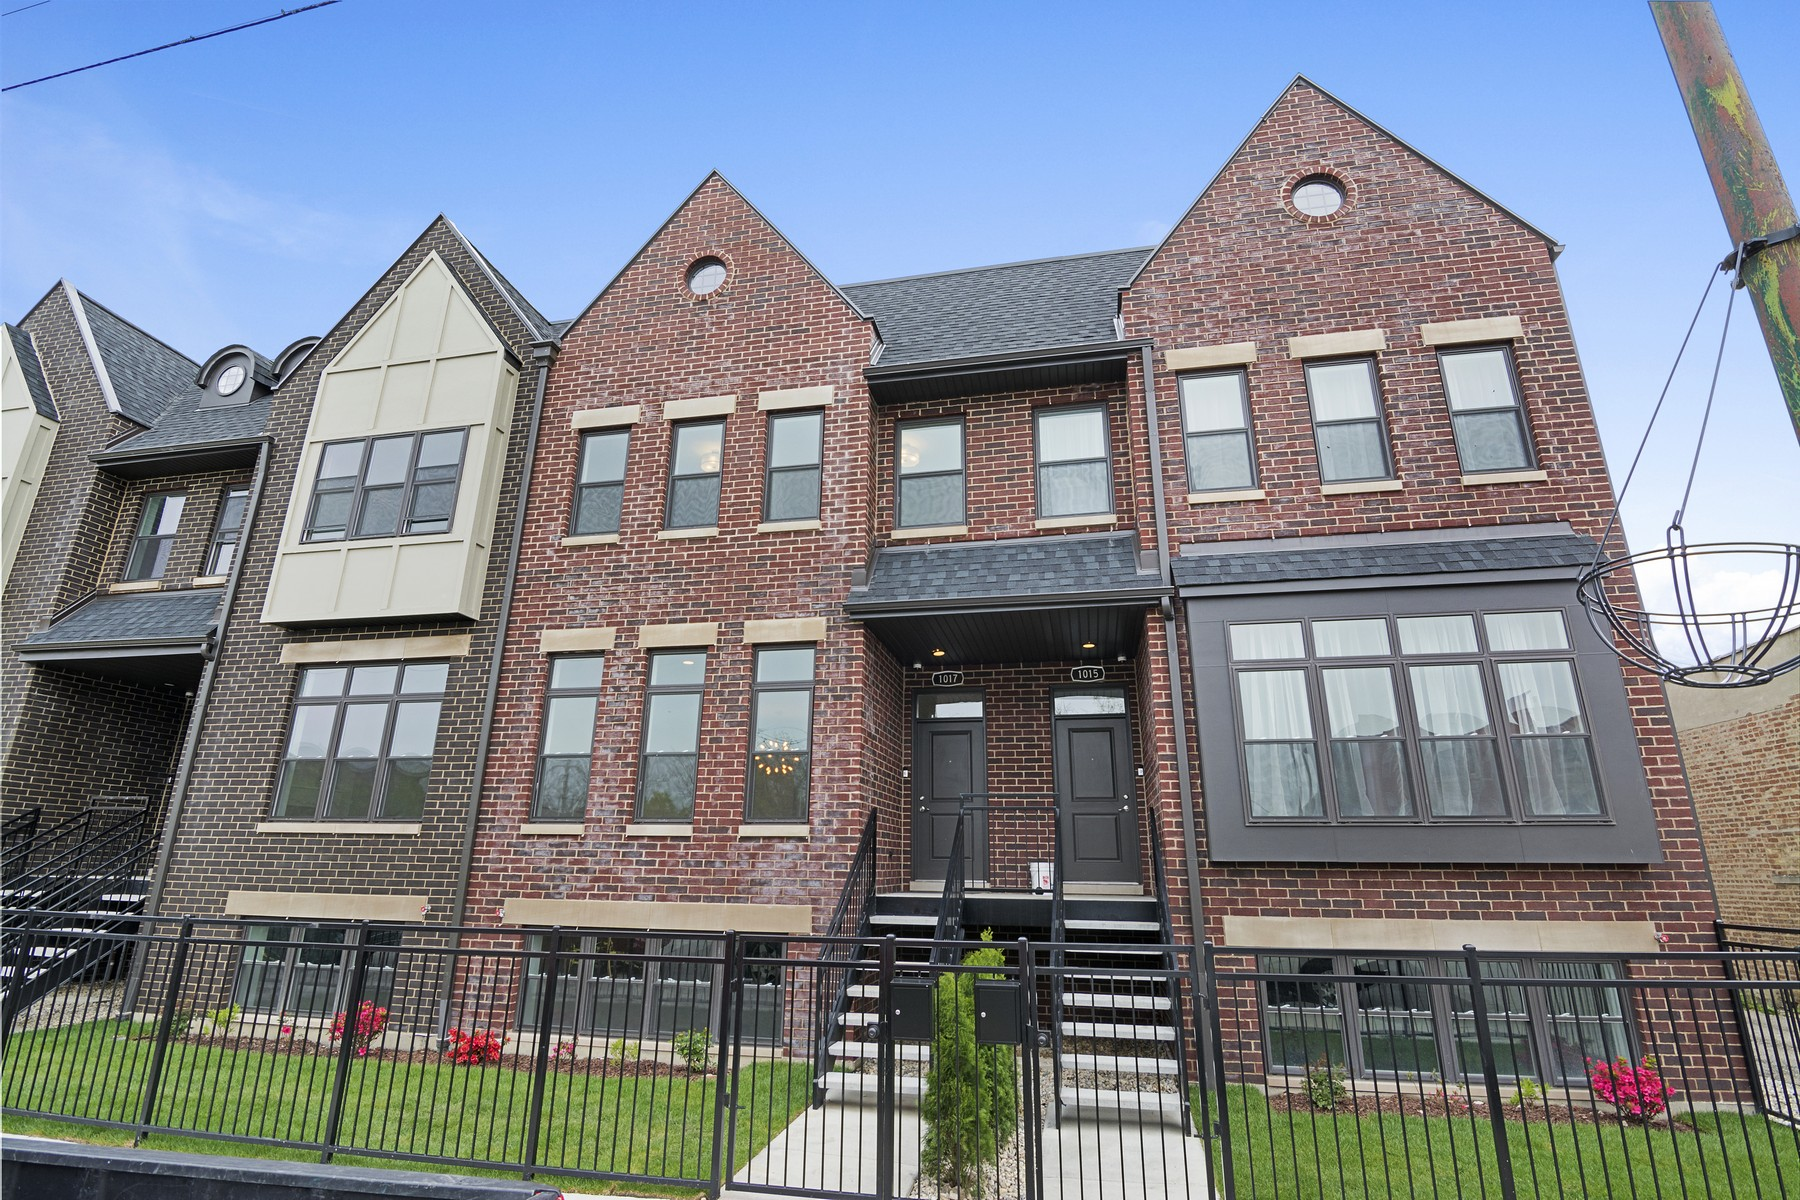 Single Family Home for Sale at Brand New Luxury Row Home 4302A S Drexel Boulevard, Chicago, Illinois, 60653 United States